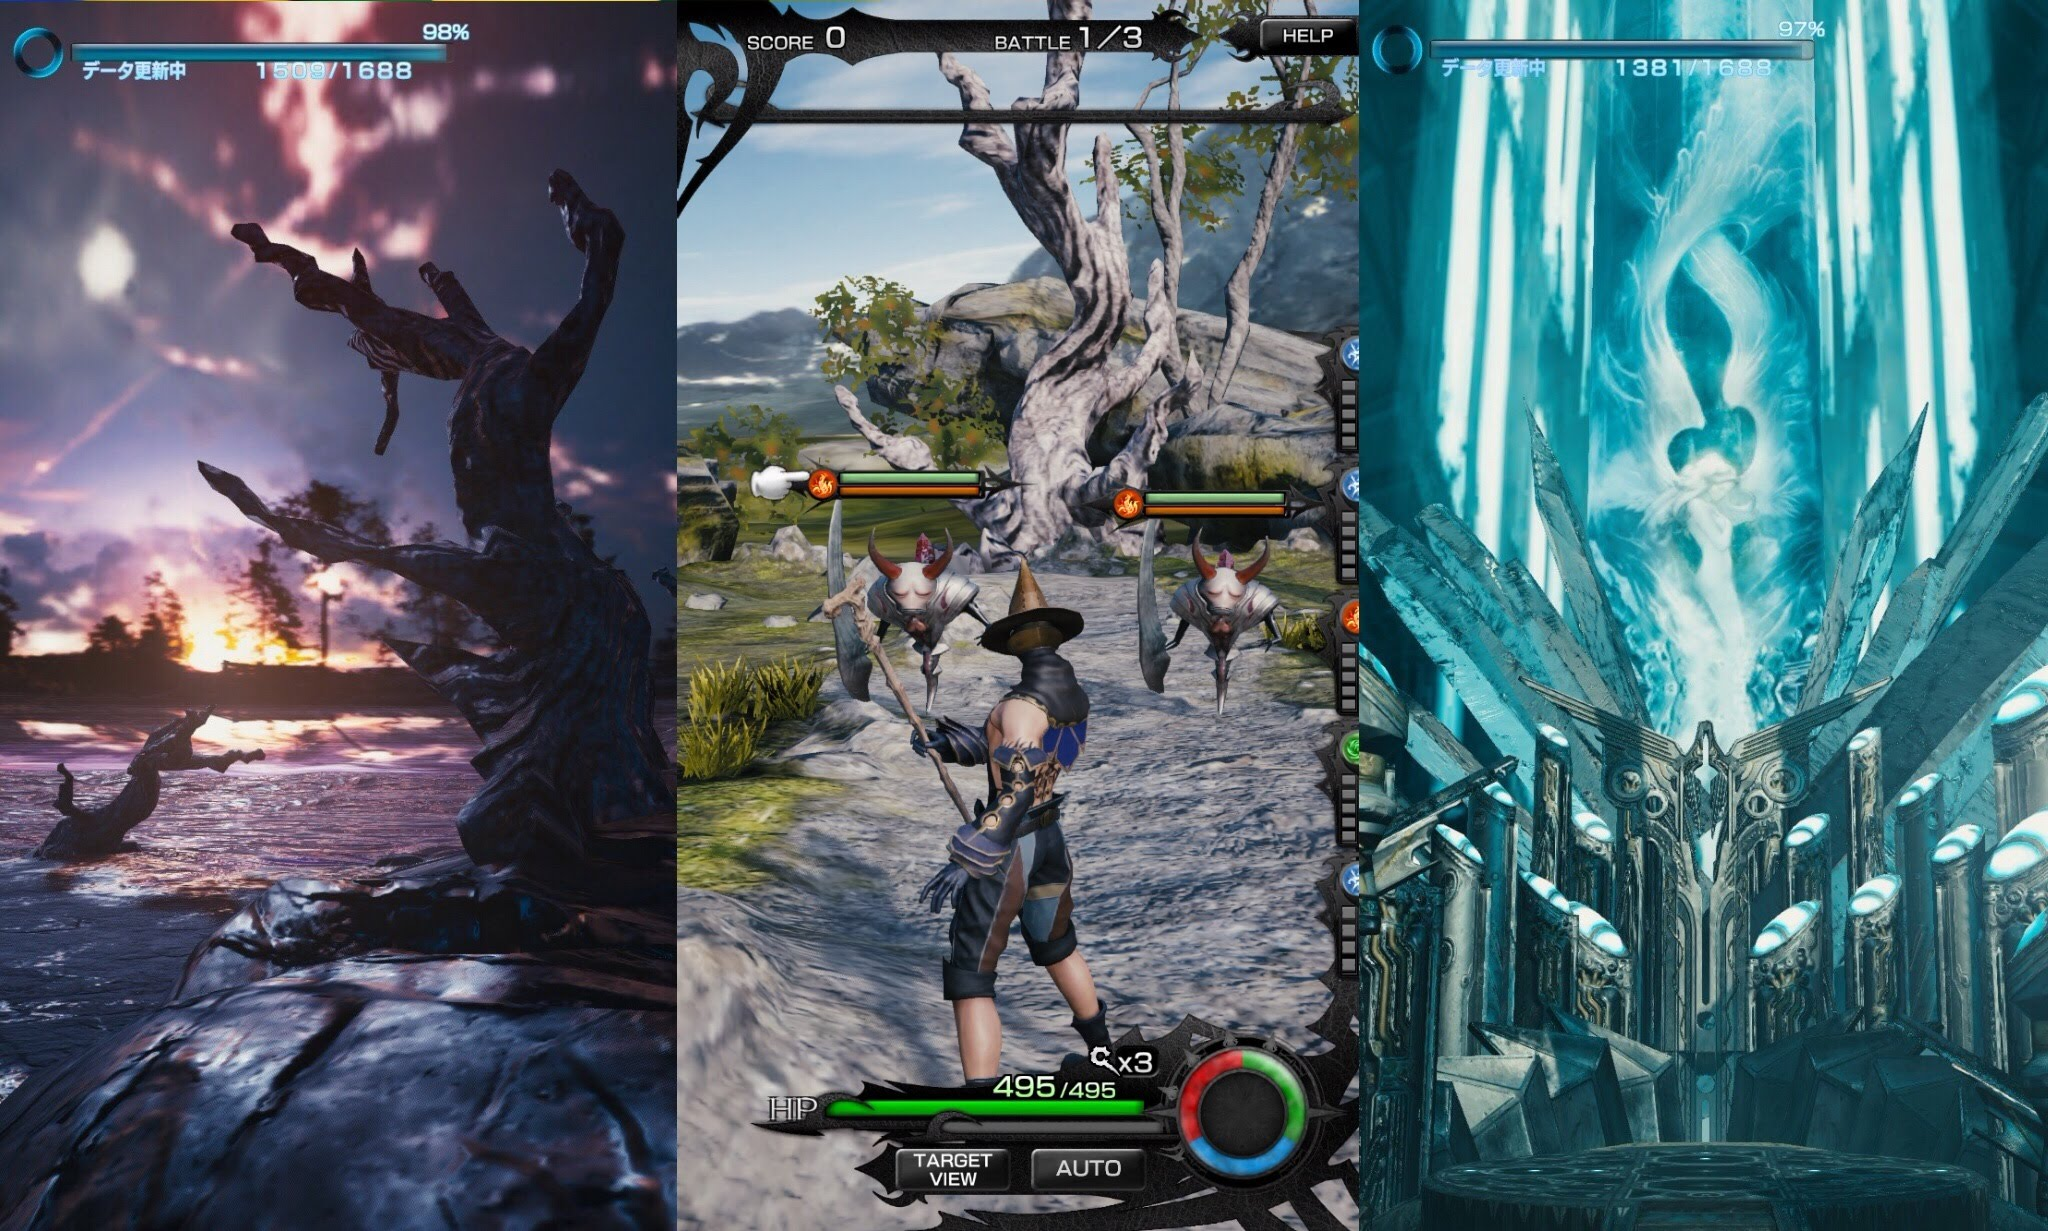 Mobius Final Fantasy' Releases on August 3rd